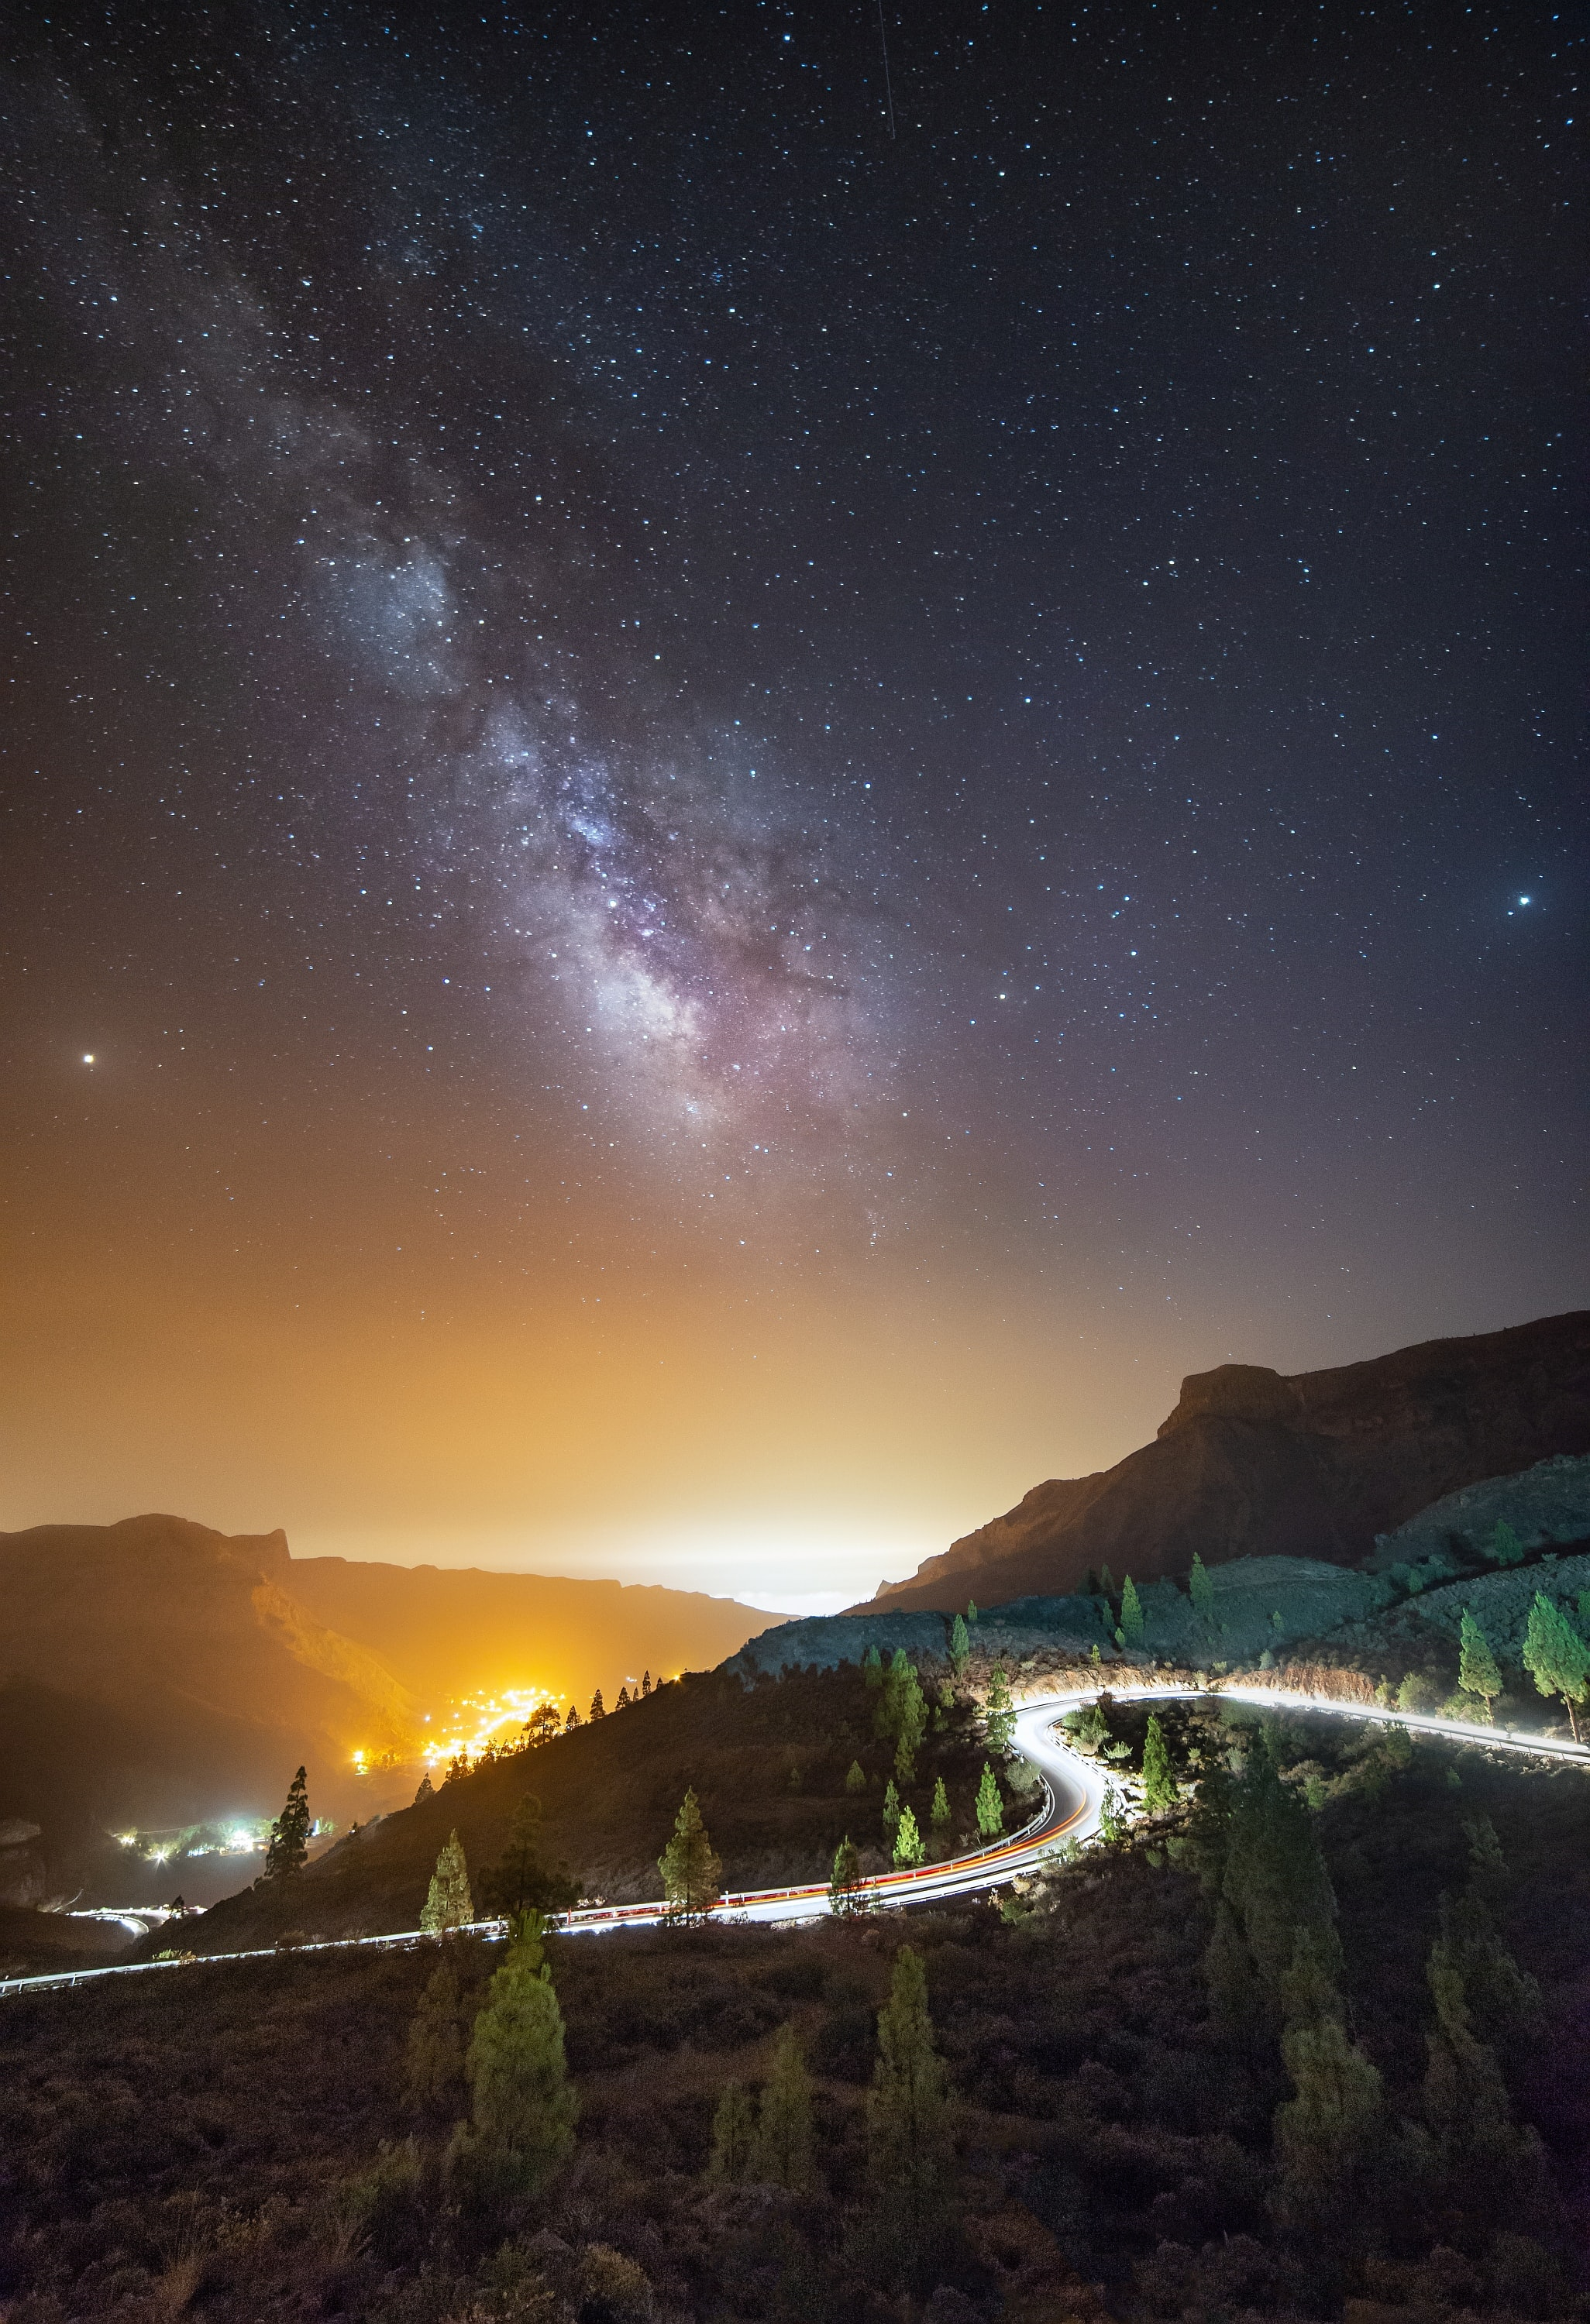 scenery of stars and mountain hill